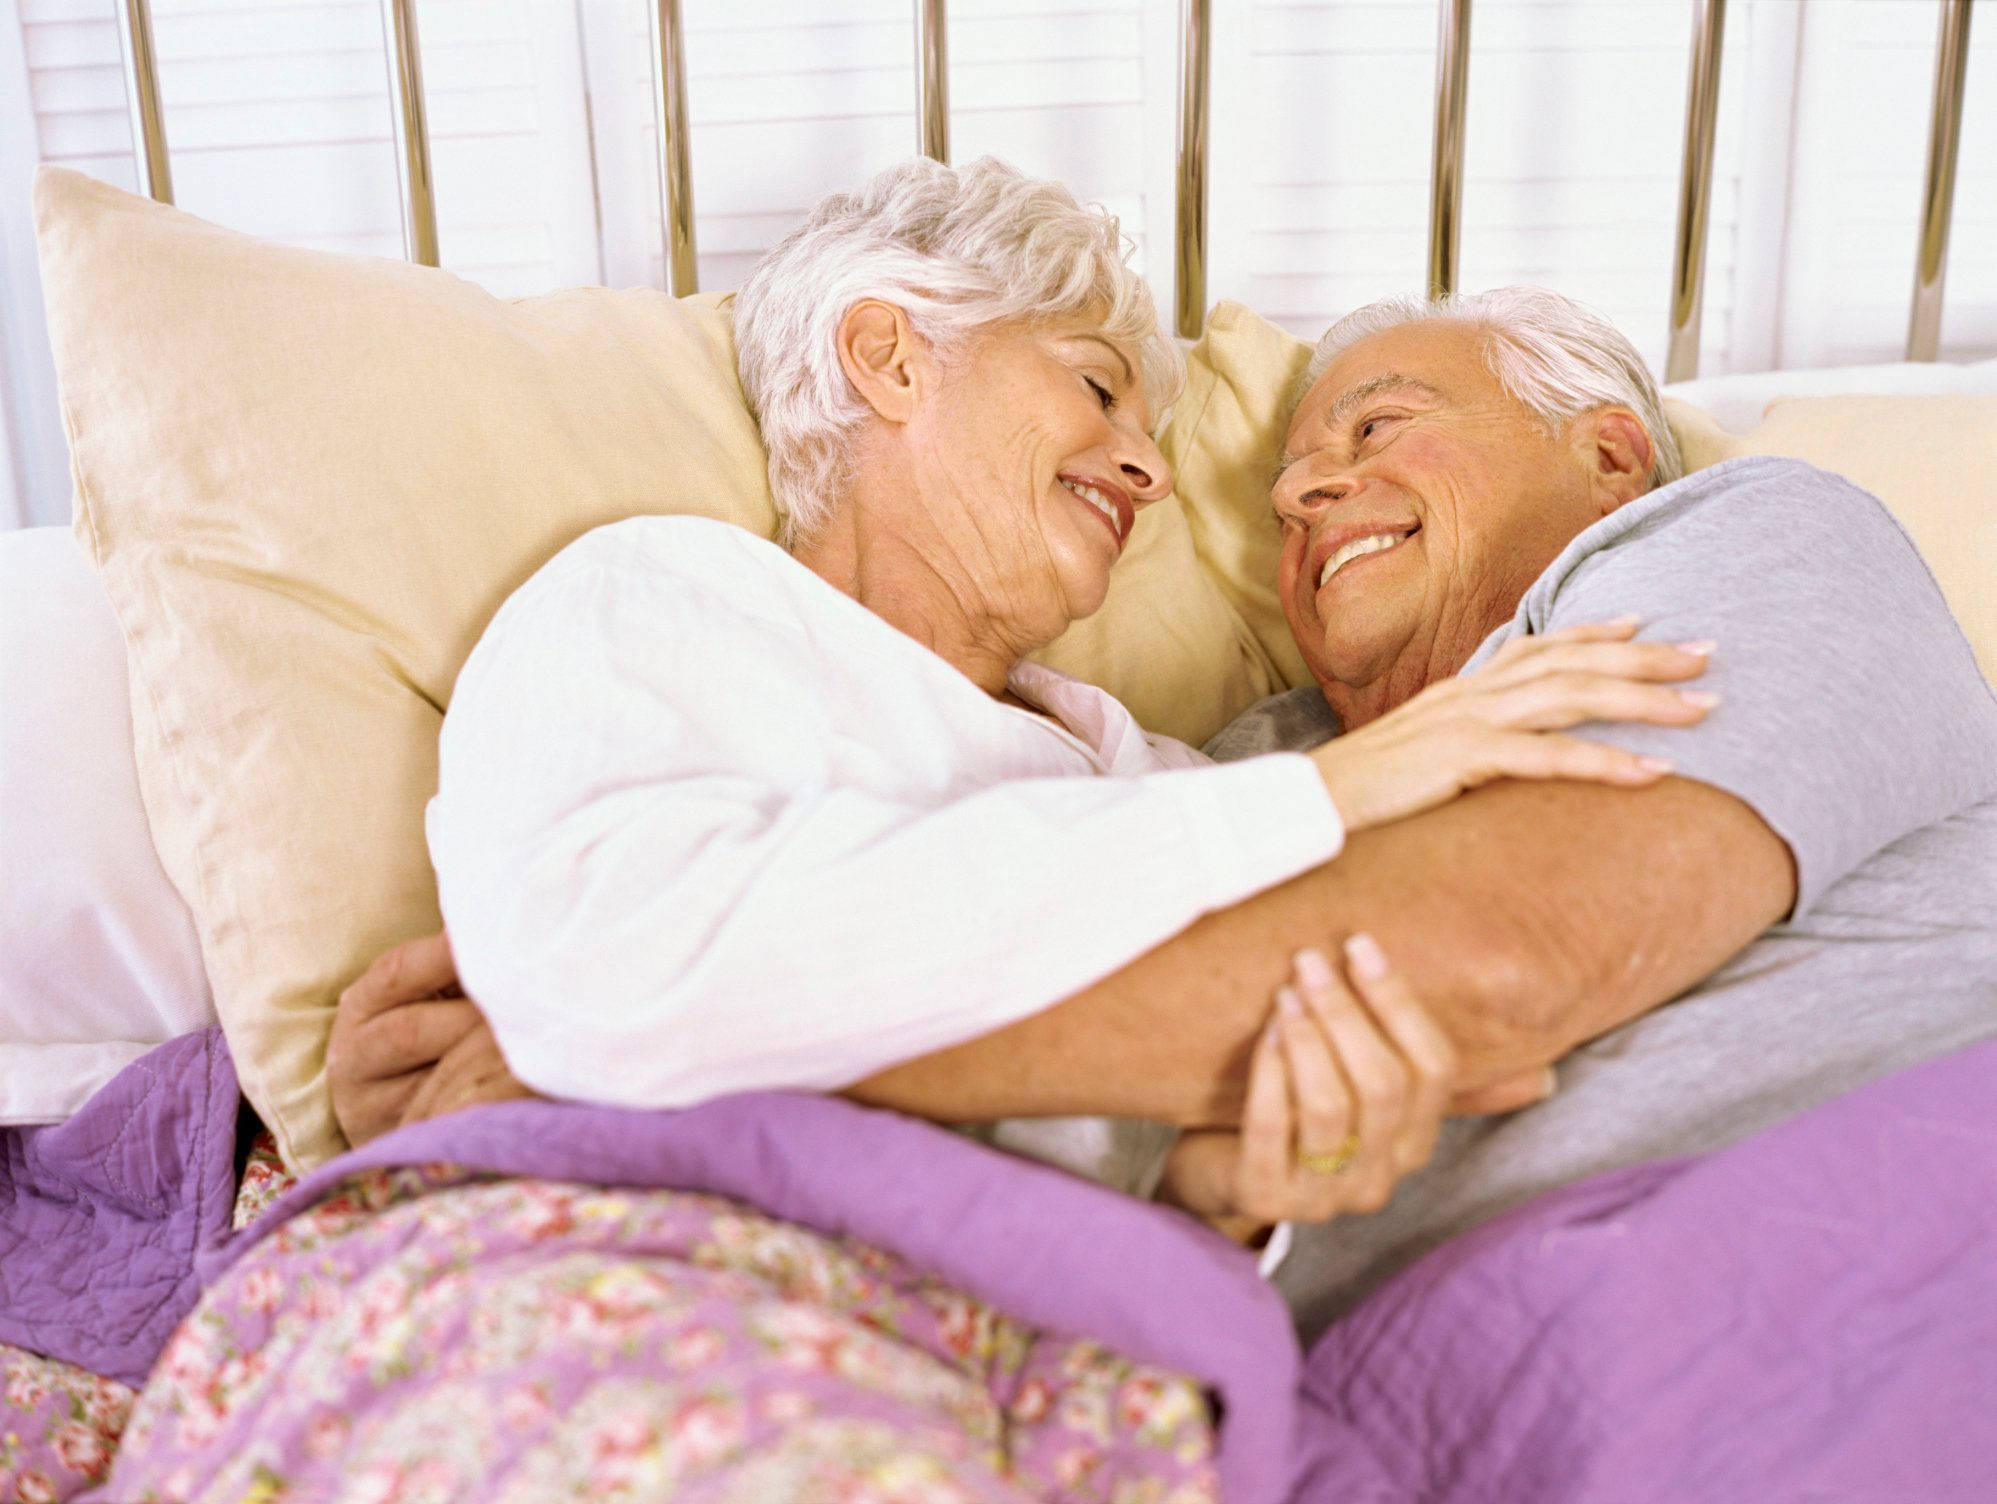 High angle view of a senior couple lying on the bed, hugging